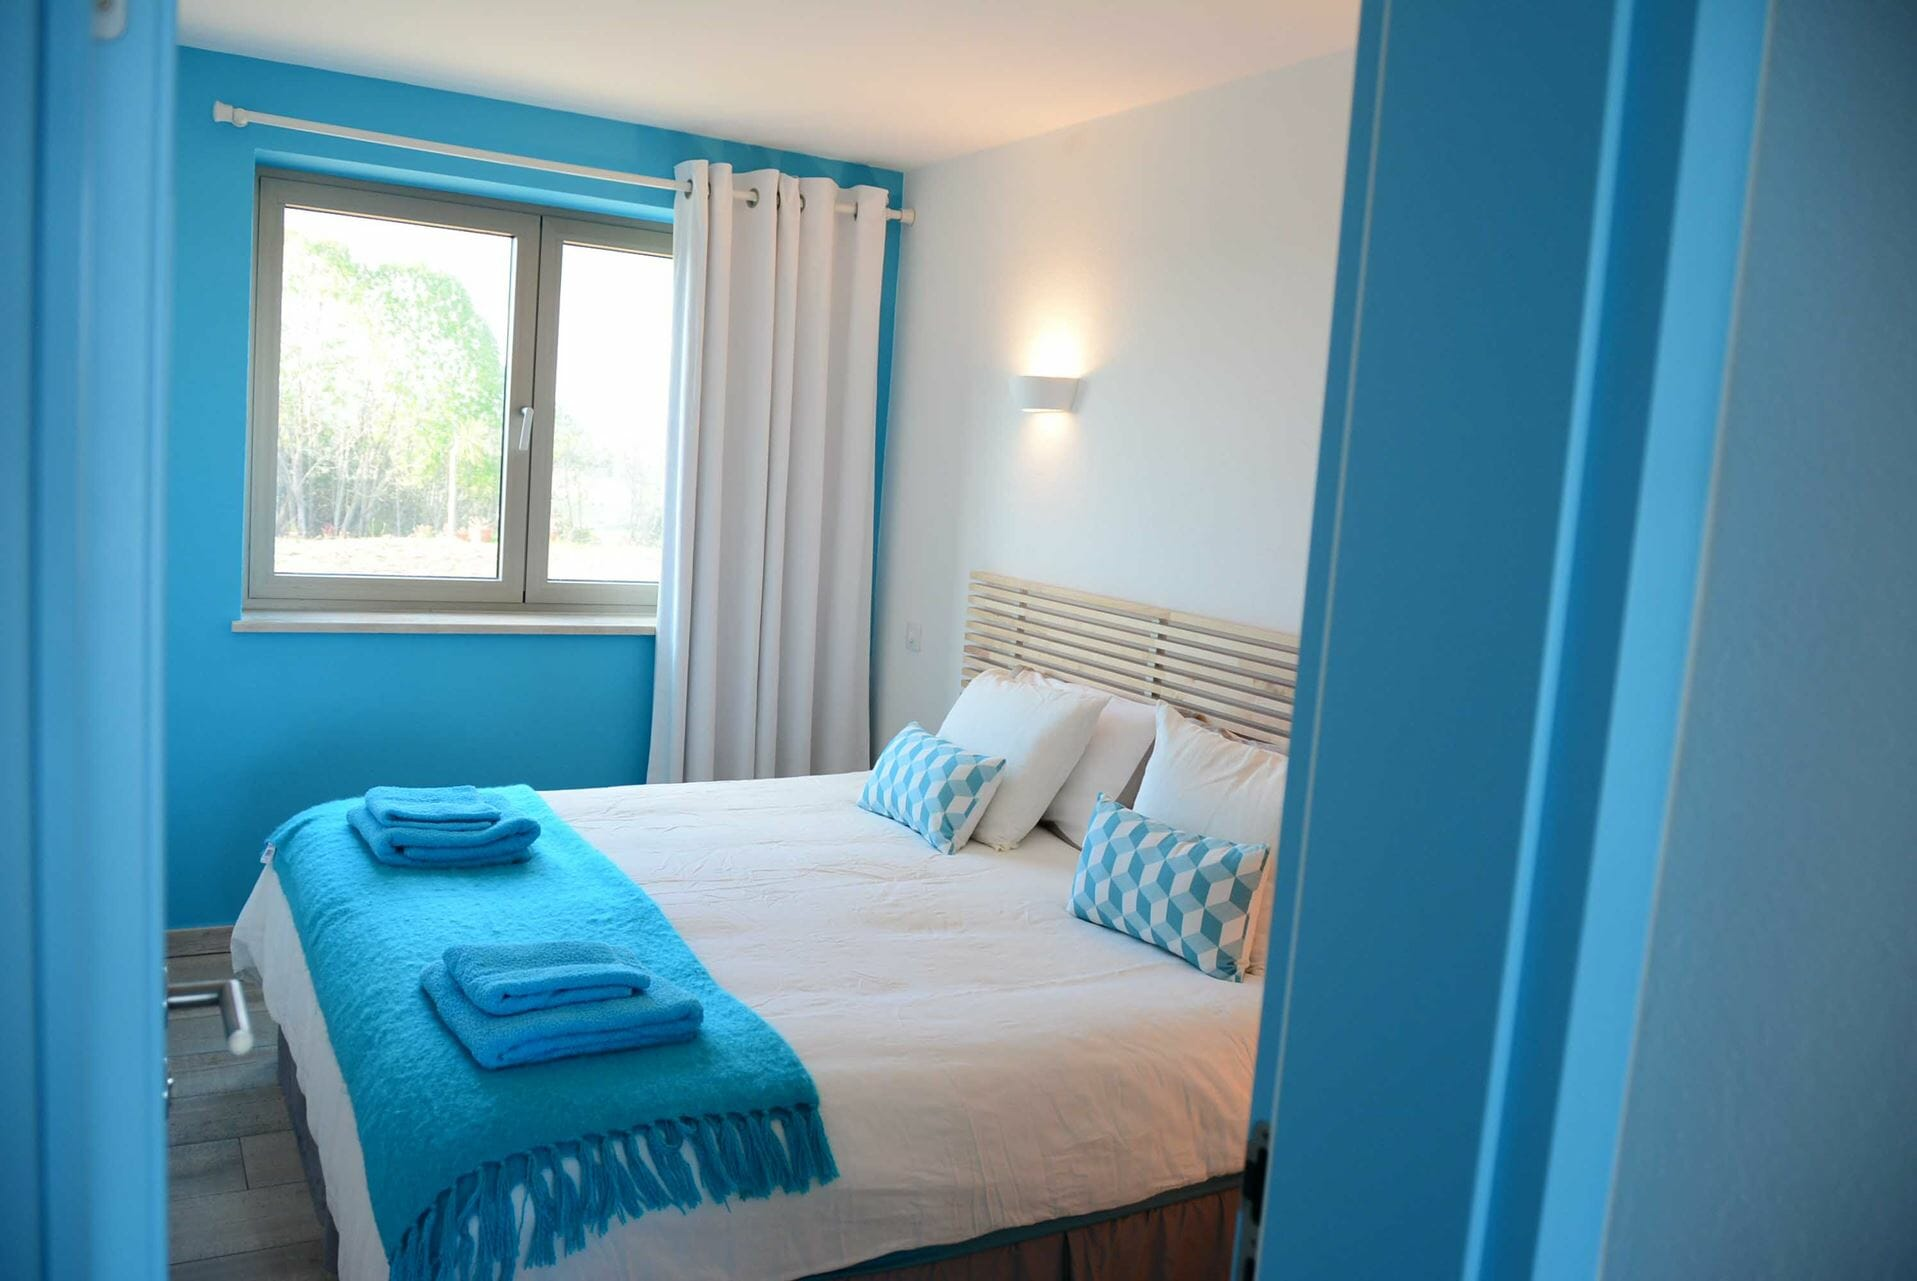 Azul 2 Bedroom Apartment (4) Ocean Blue Portugal Active Holidays Algarve